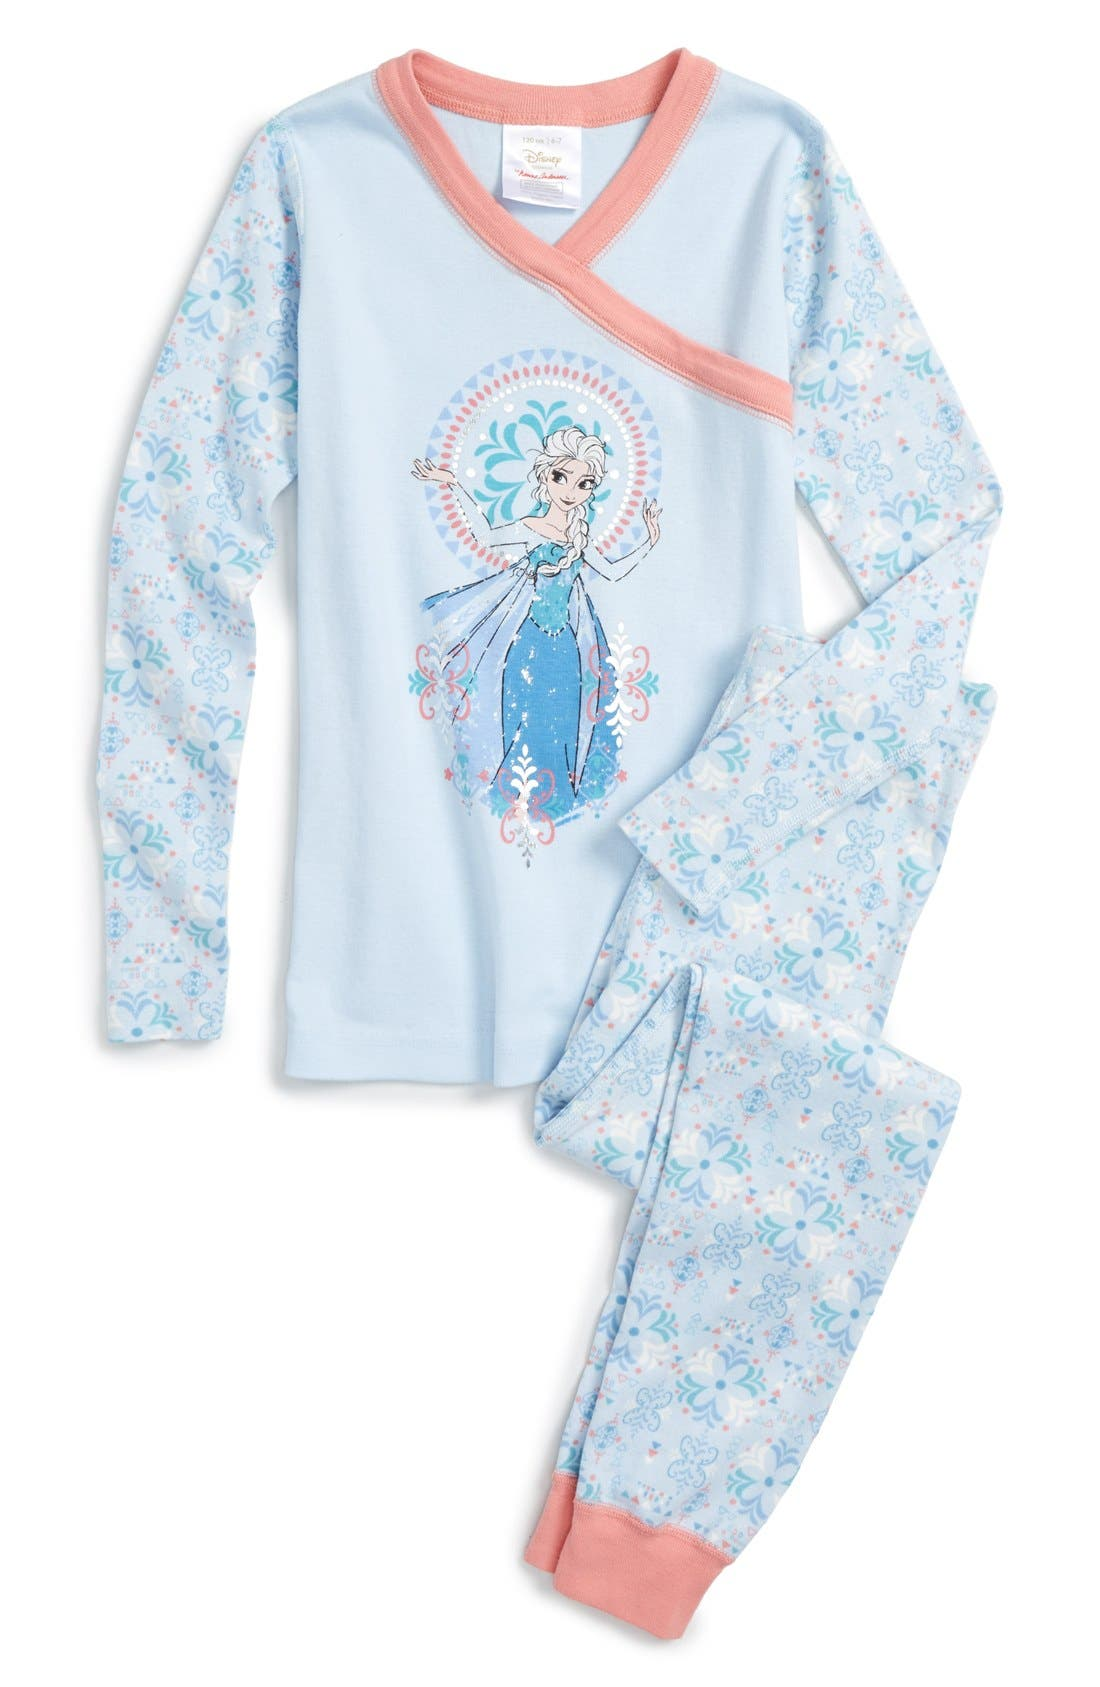 'Disney<sup>®</sup> Frozen' Organic Cotton Two-Piece Fitted Pajamas, Main, color, 418